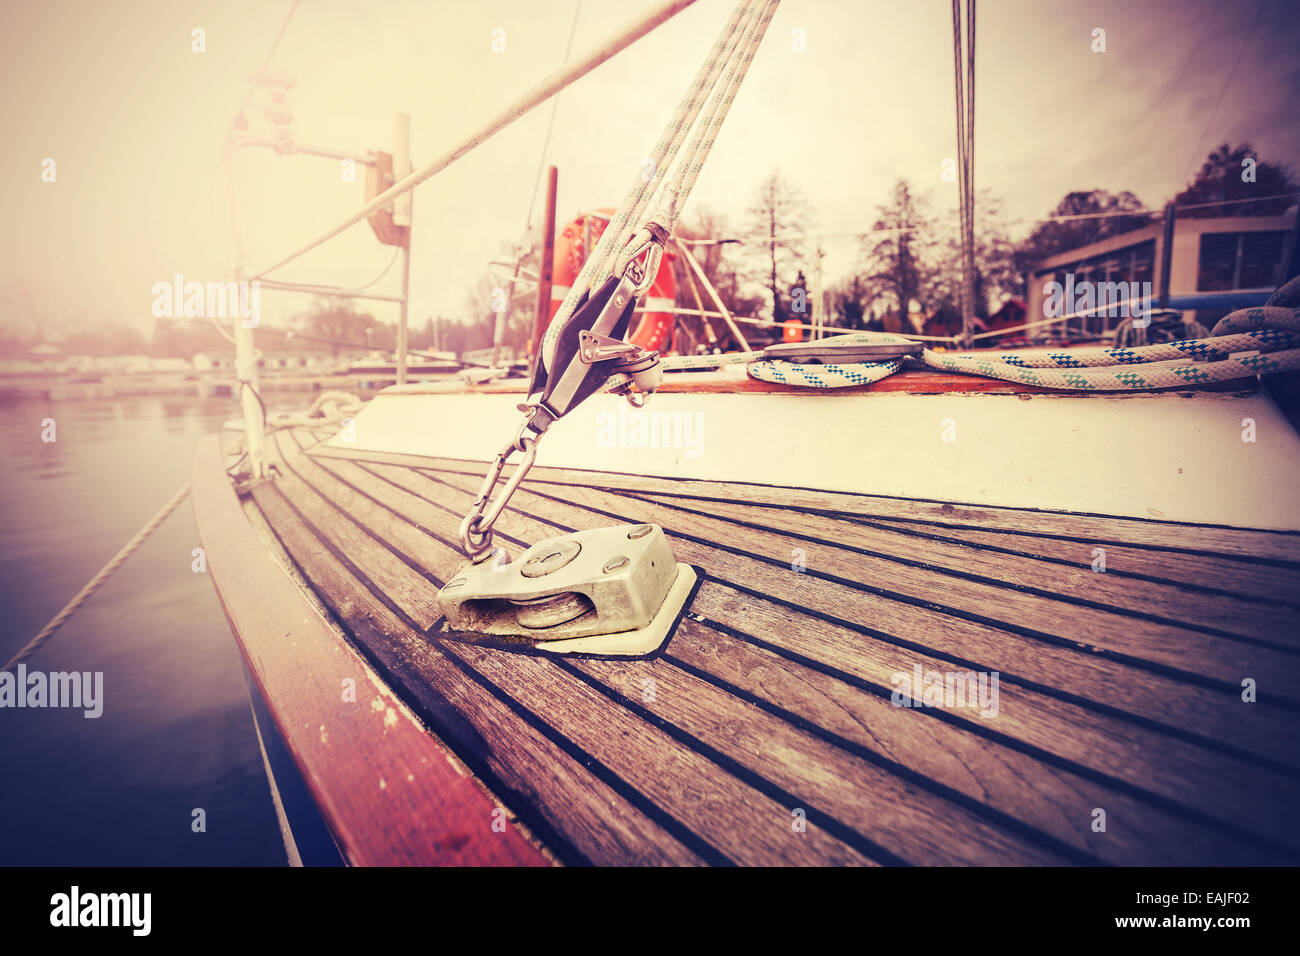 Vintage filtered close up picture of yacht rigging. - Stock Image